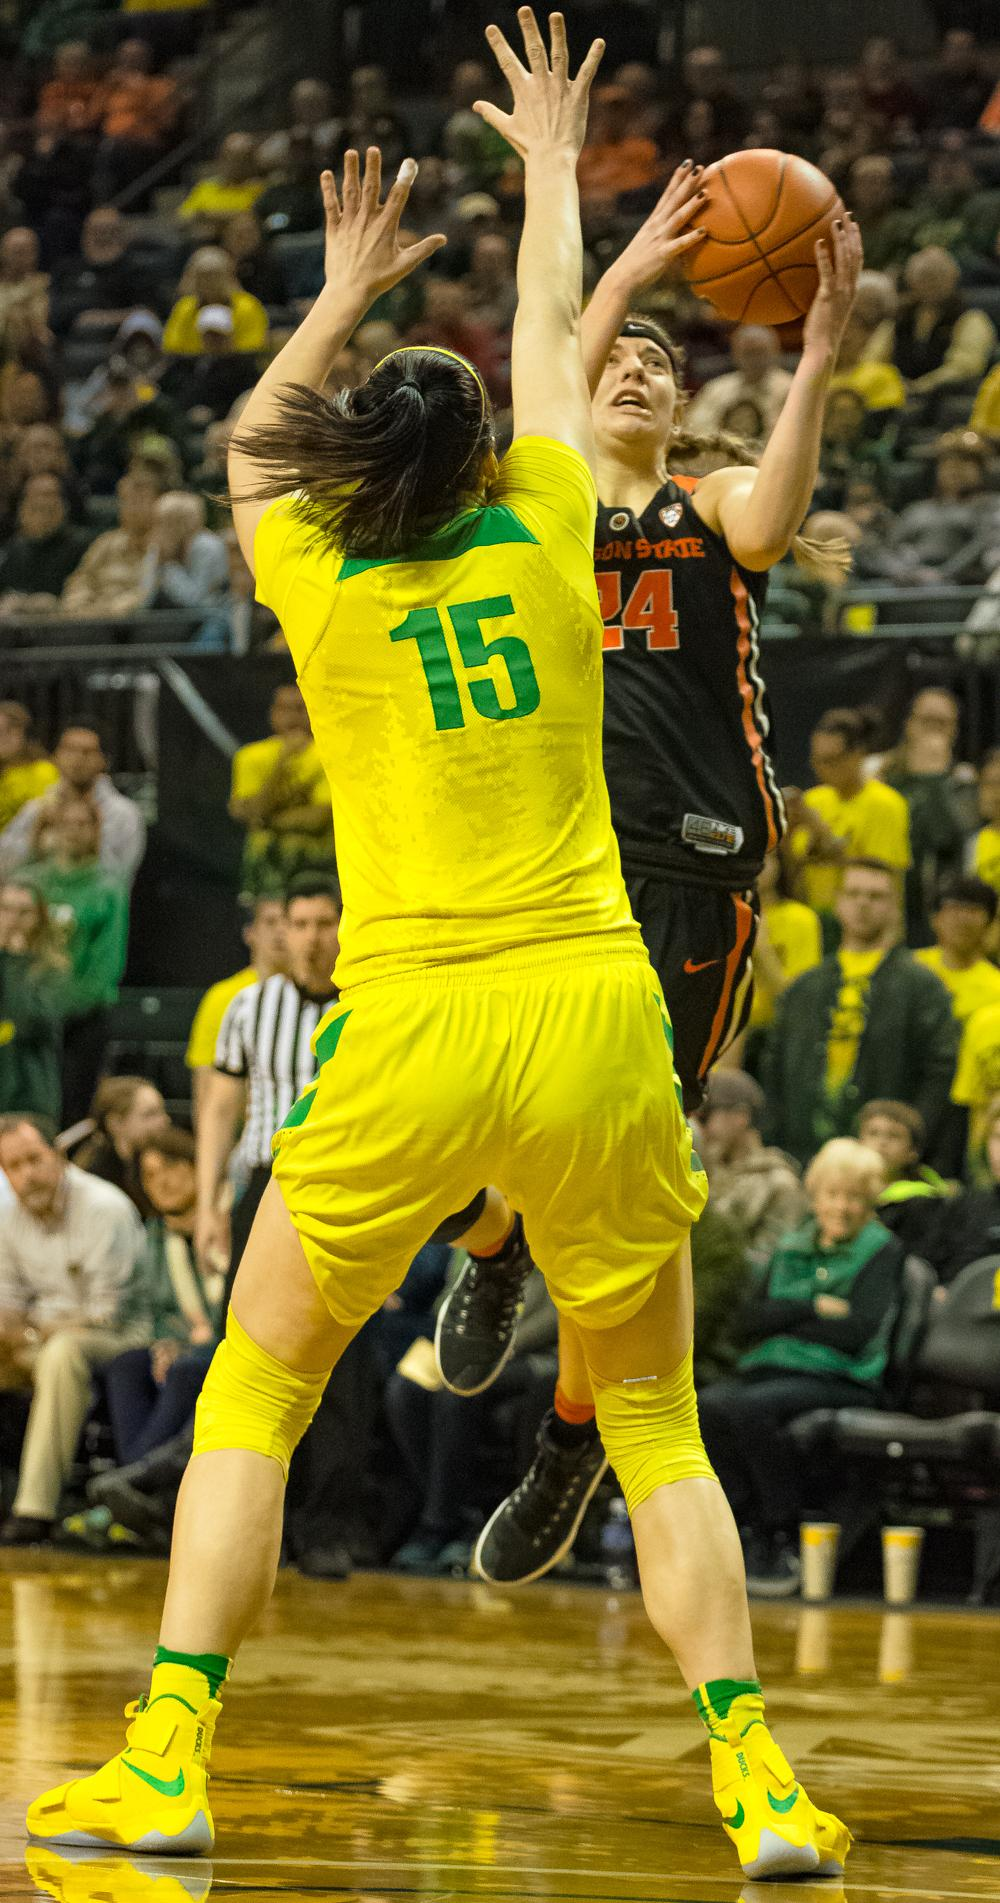 Oregon Ducks Forward Jacinta Vadenberg (#15) protects the basket against Guard Sydney Wiese (#24) as she attempts a layup. Oregon Ducks lost 40-43 to Oregon State Beavers in a tightly matched fourth quarter. Photo by Jonathan Booker, Oregon News Lab